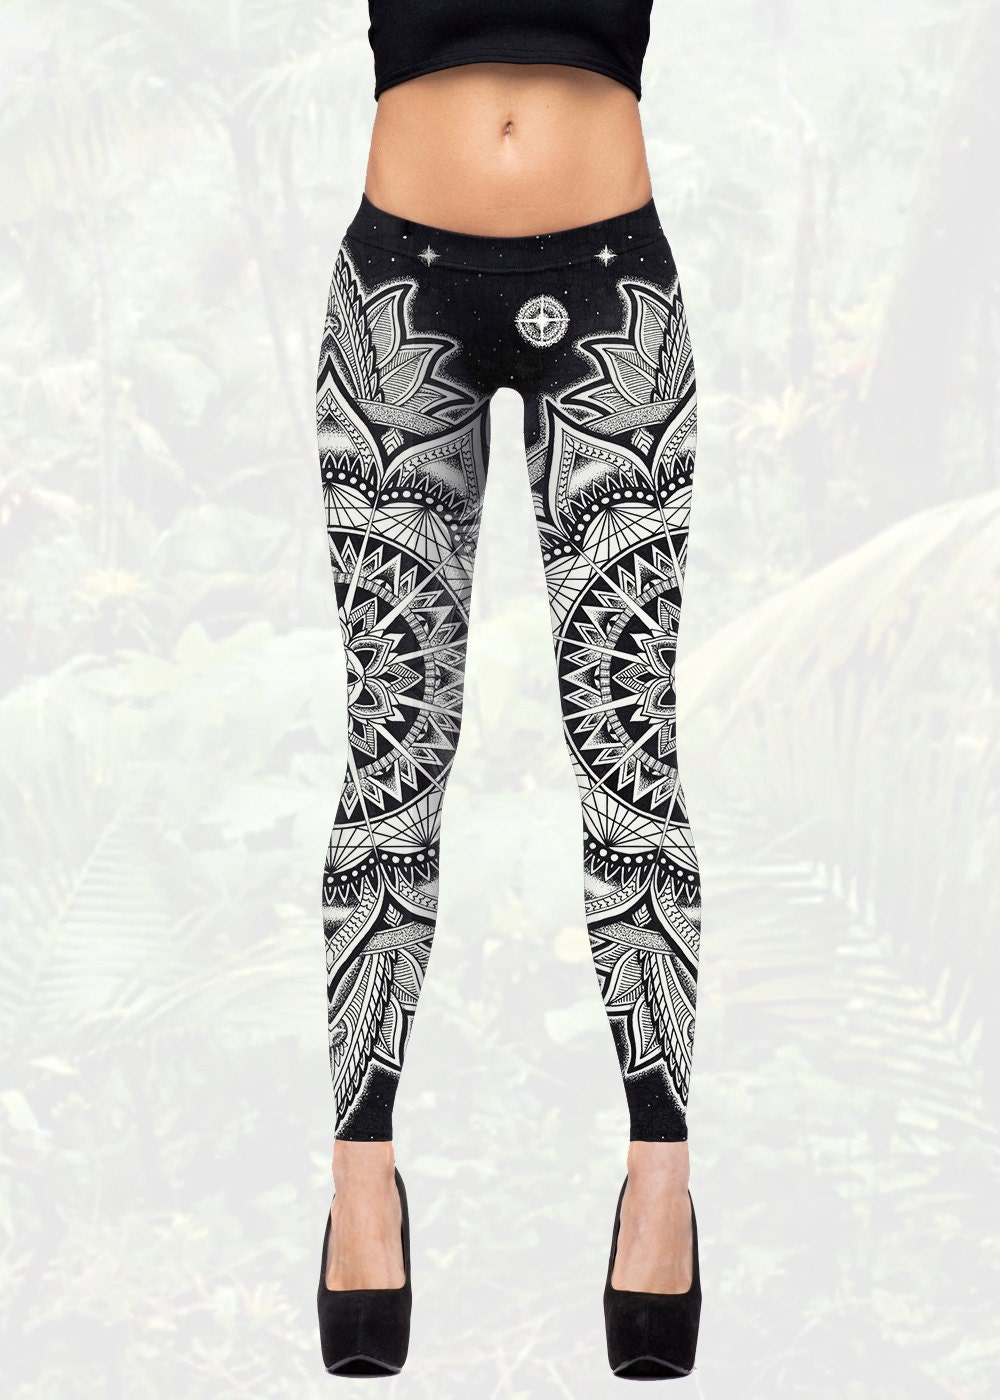 Cosmic Mandala Leggings Women's Black And White Yoga